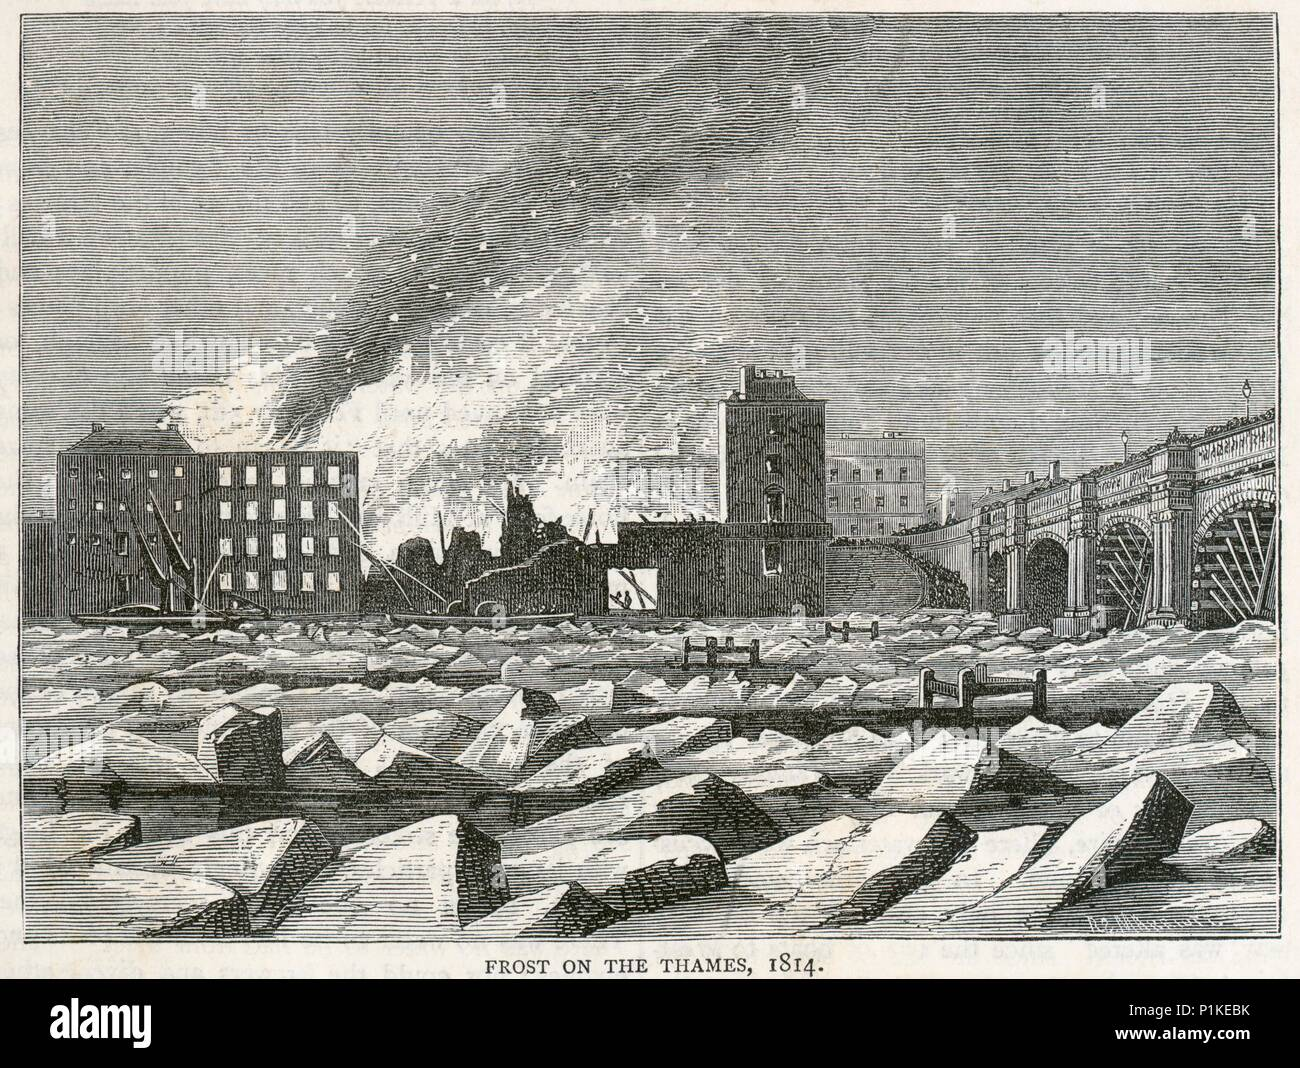 Frost on the River Thames, London, 1814. View showing a fire at Albion Place. From the Mayson Beeton Collection. - Stock Image